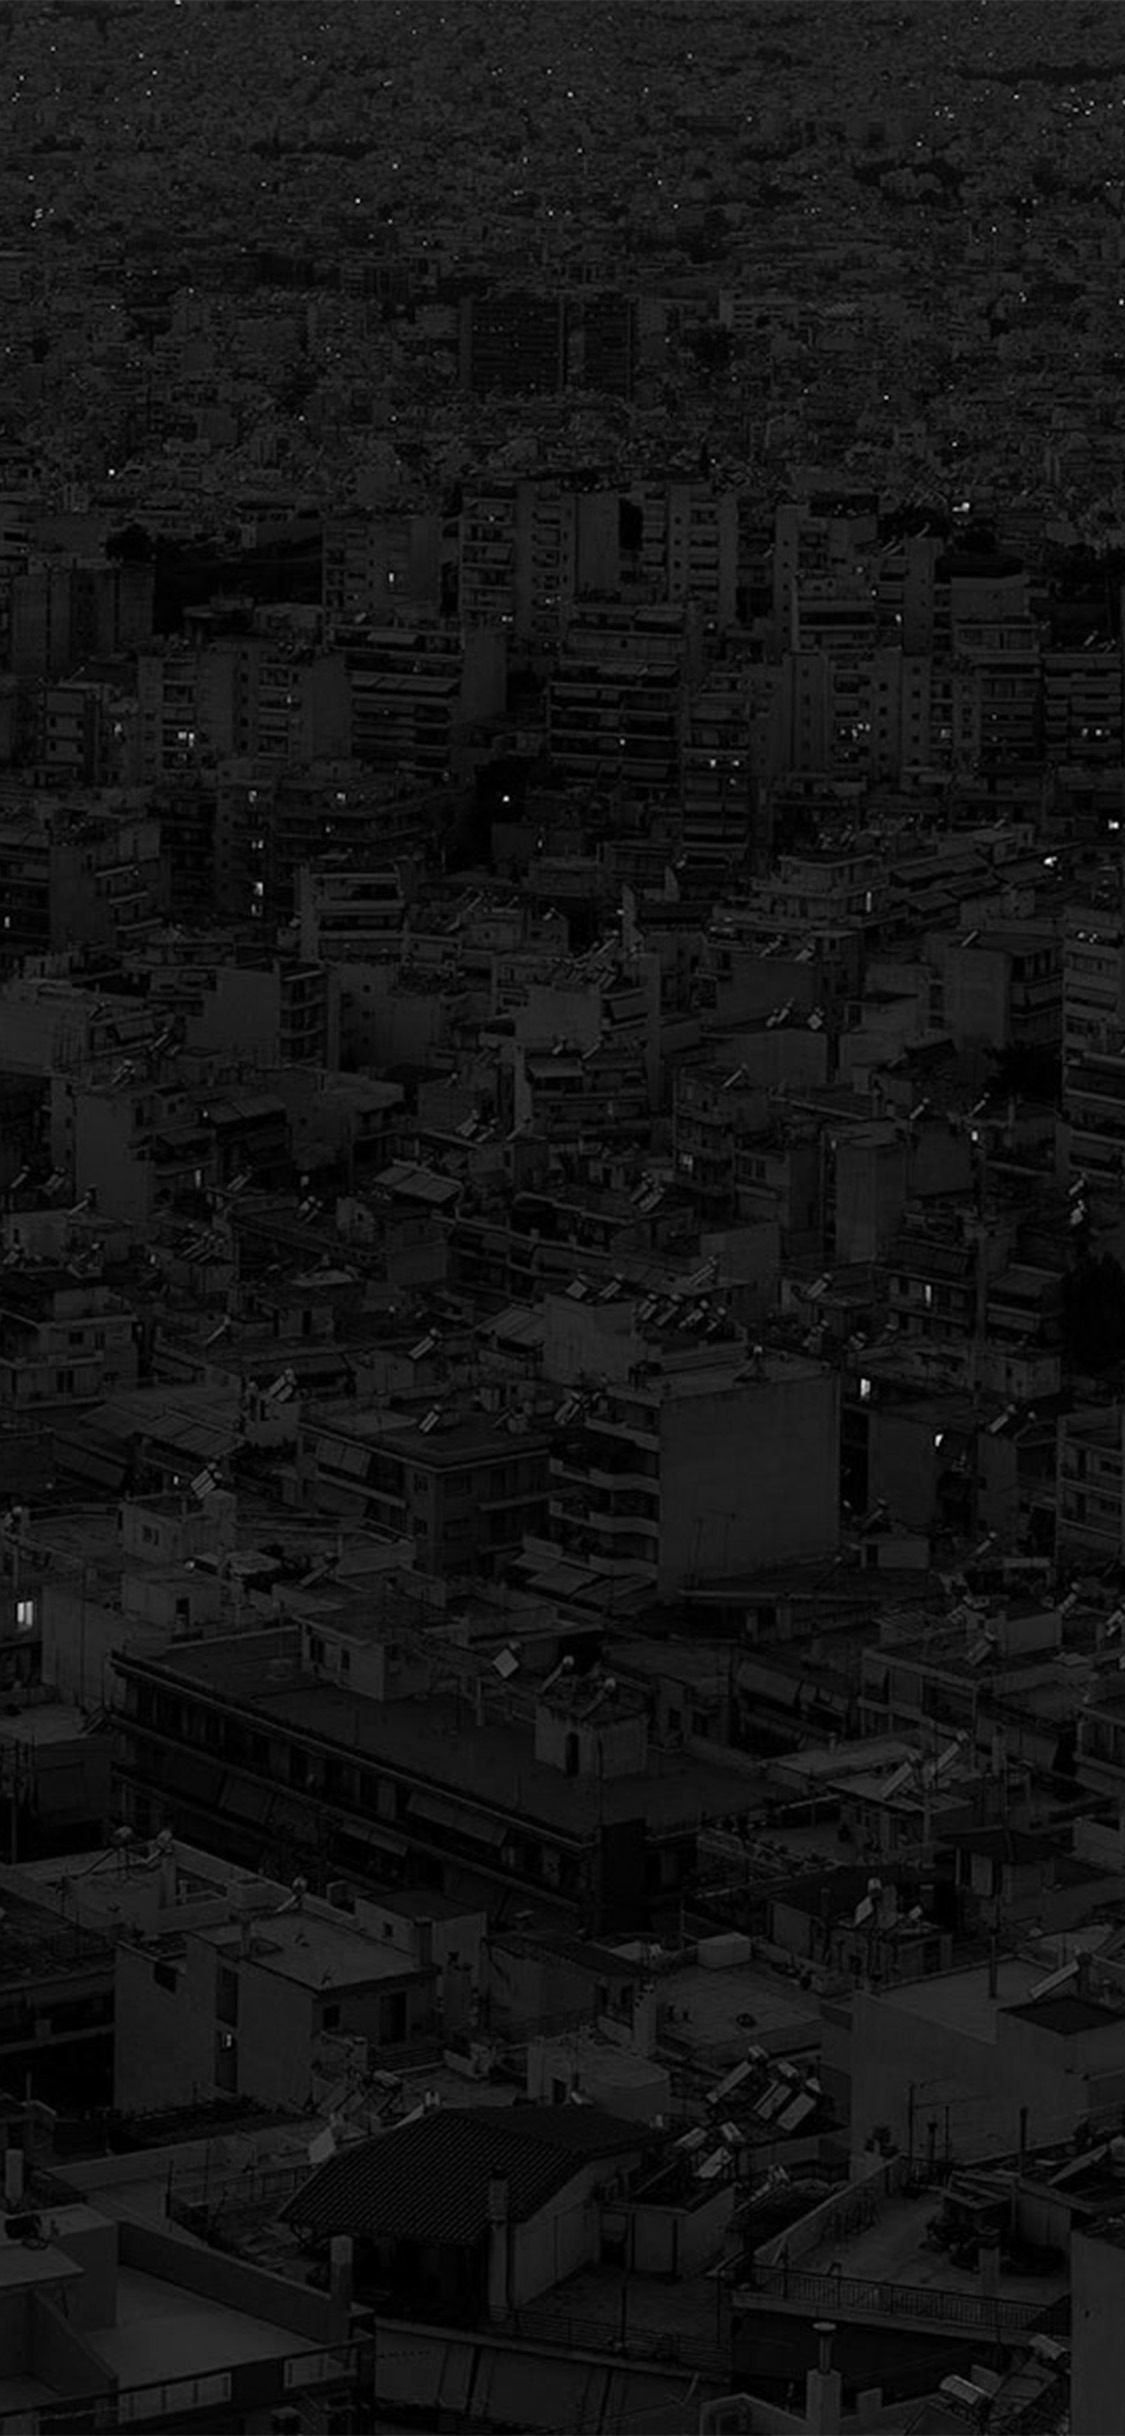 iPhonexpapers.com-Apple-iPhone-wallpaper-be38-dark-city-night-art-illustration-bw